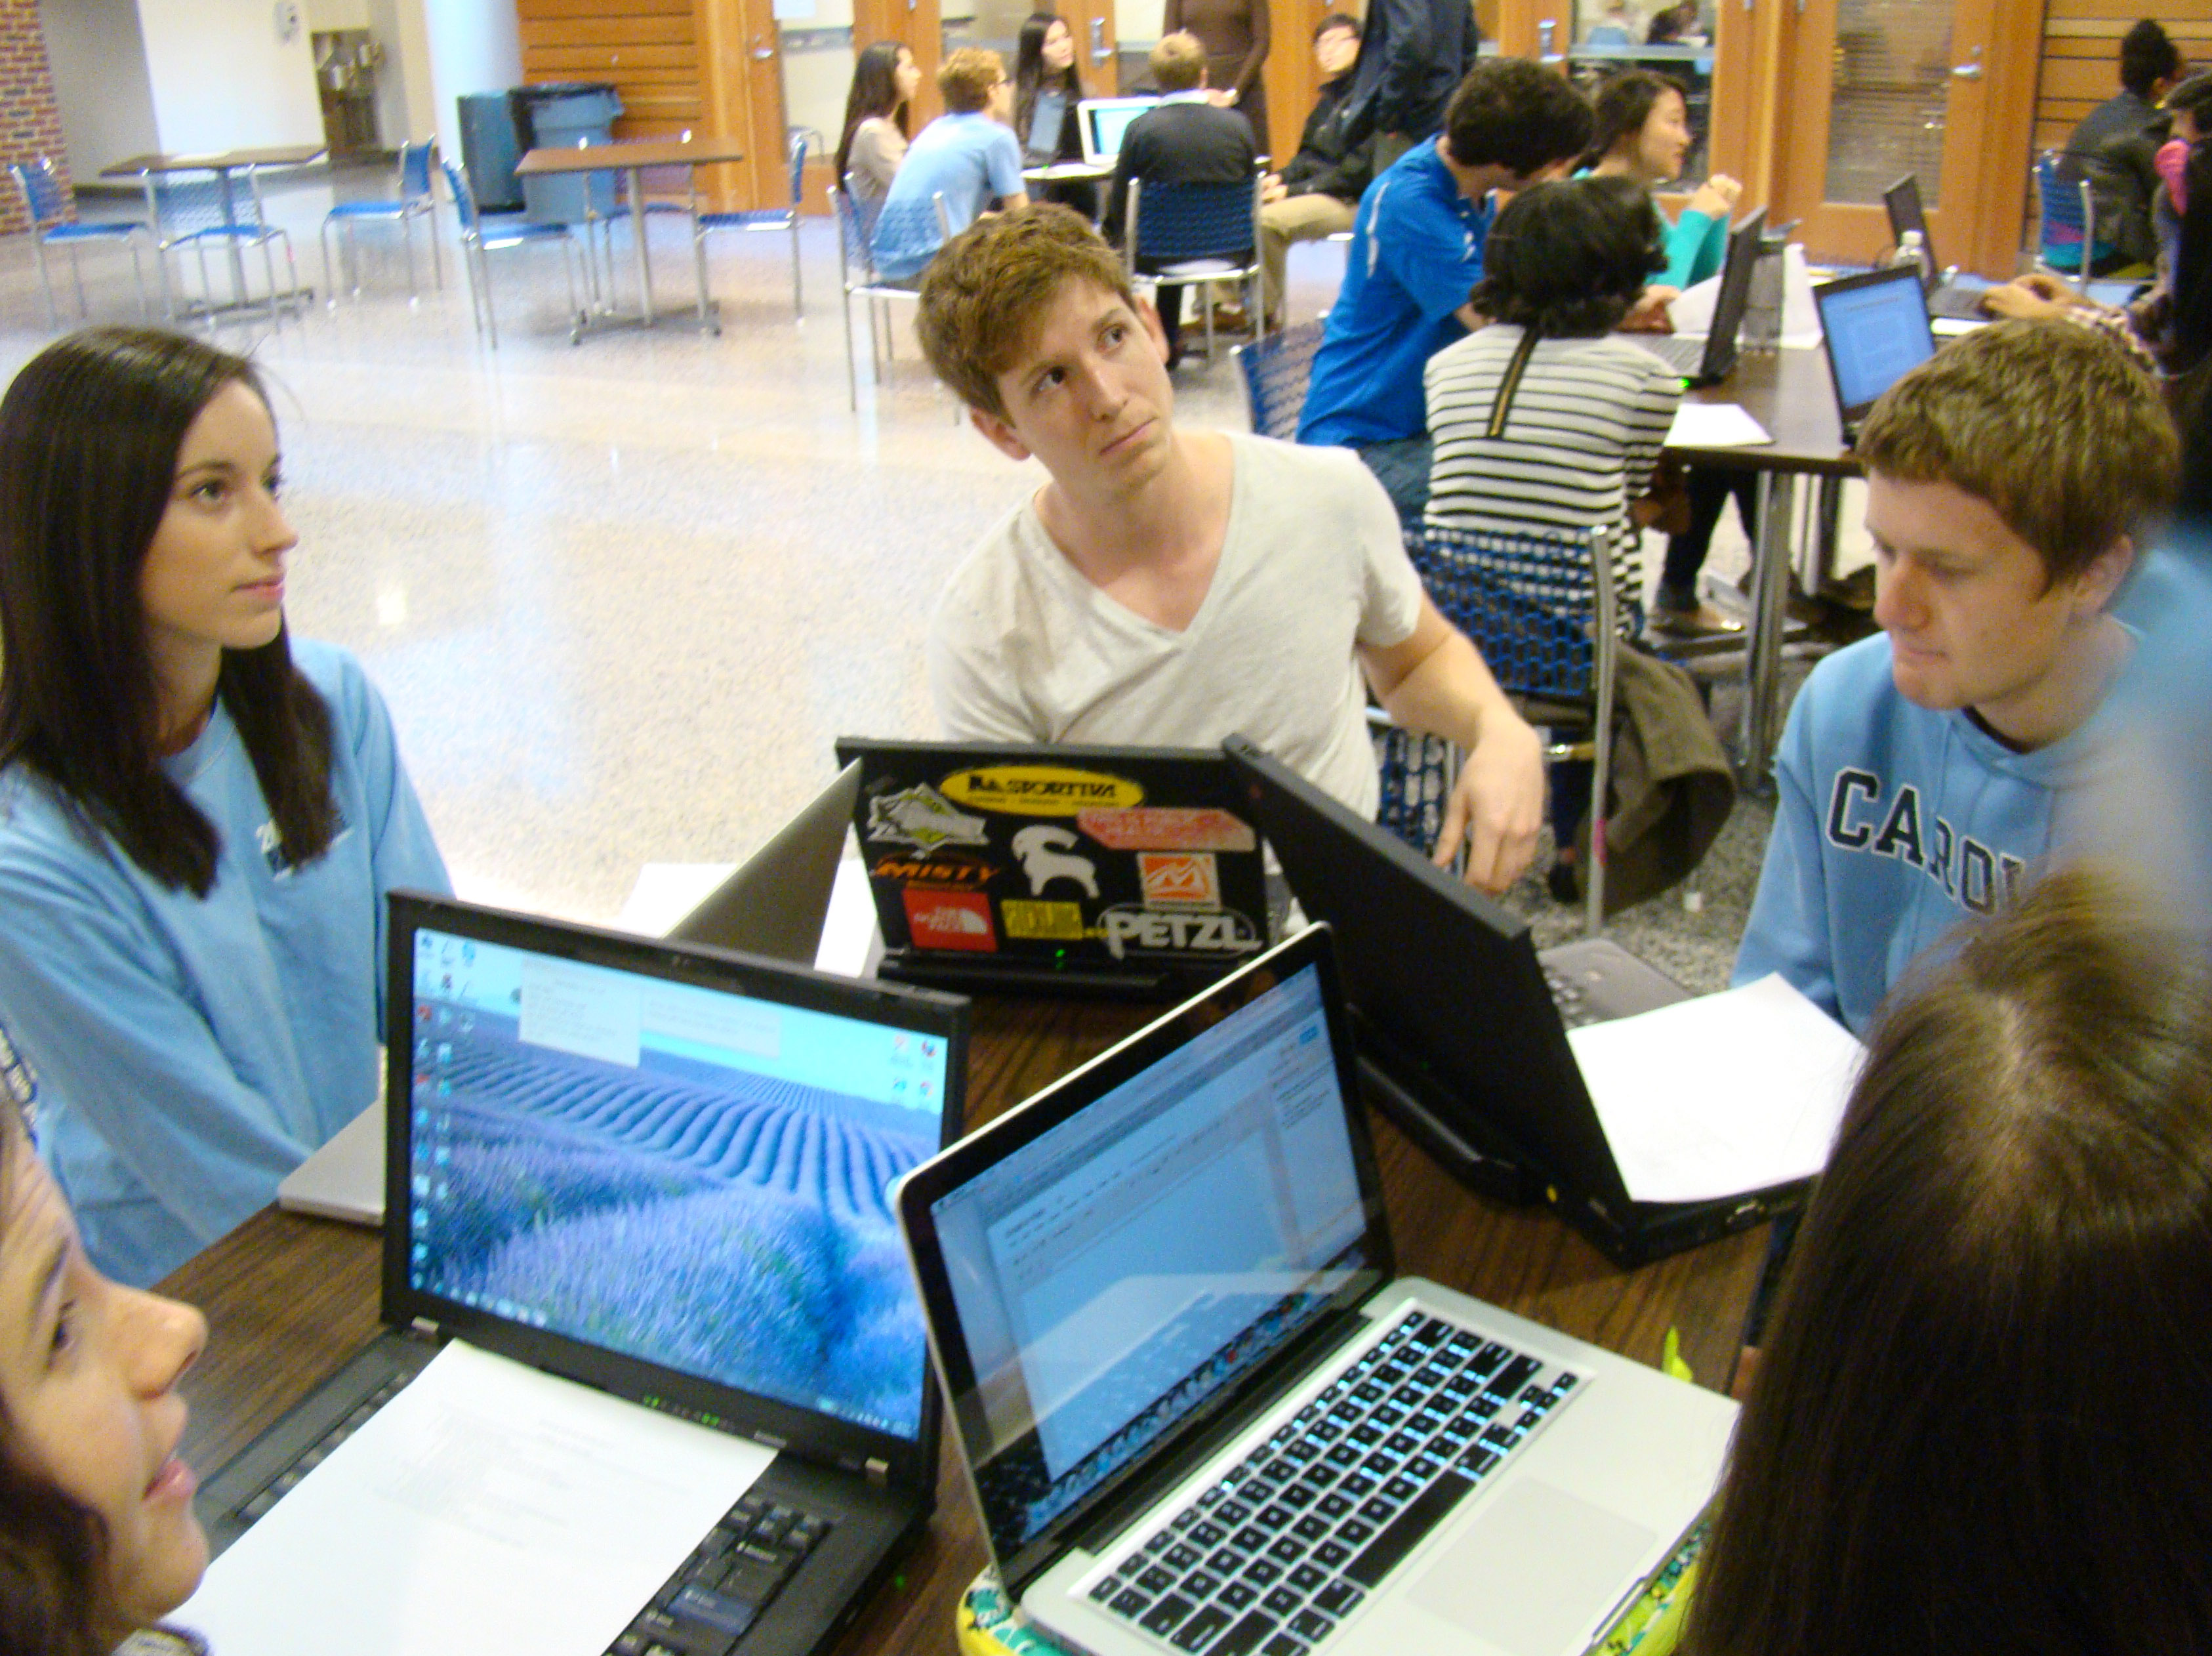 In Dr. Hobbs' class, students work in groups to master information quickly.